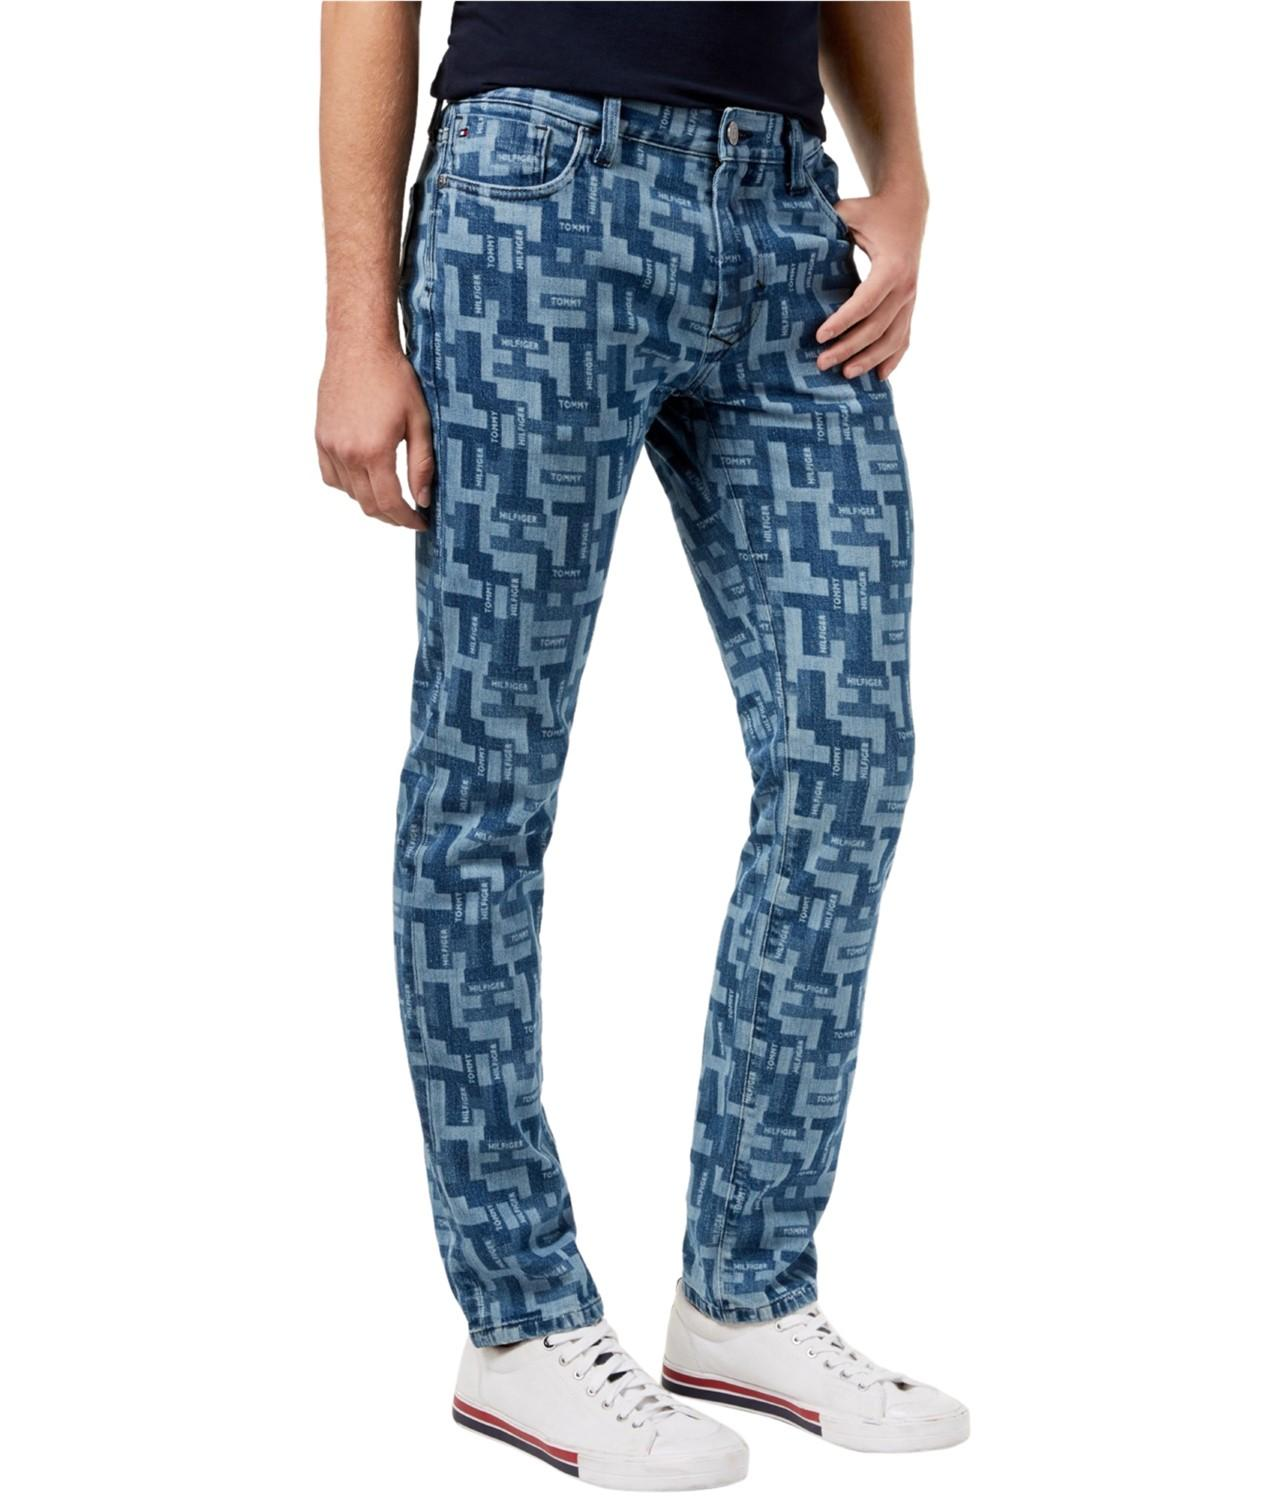 62a166afd Lyst - Tommy Hilfiger Puzzle Slim Fit Jeans in Blue for Men - Save 44%